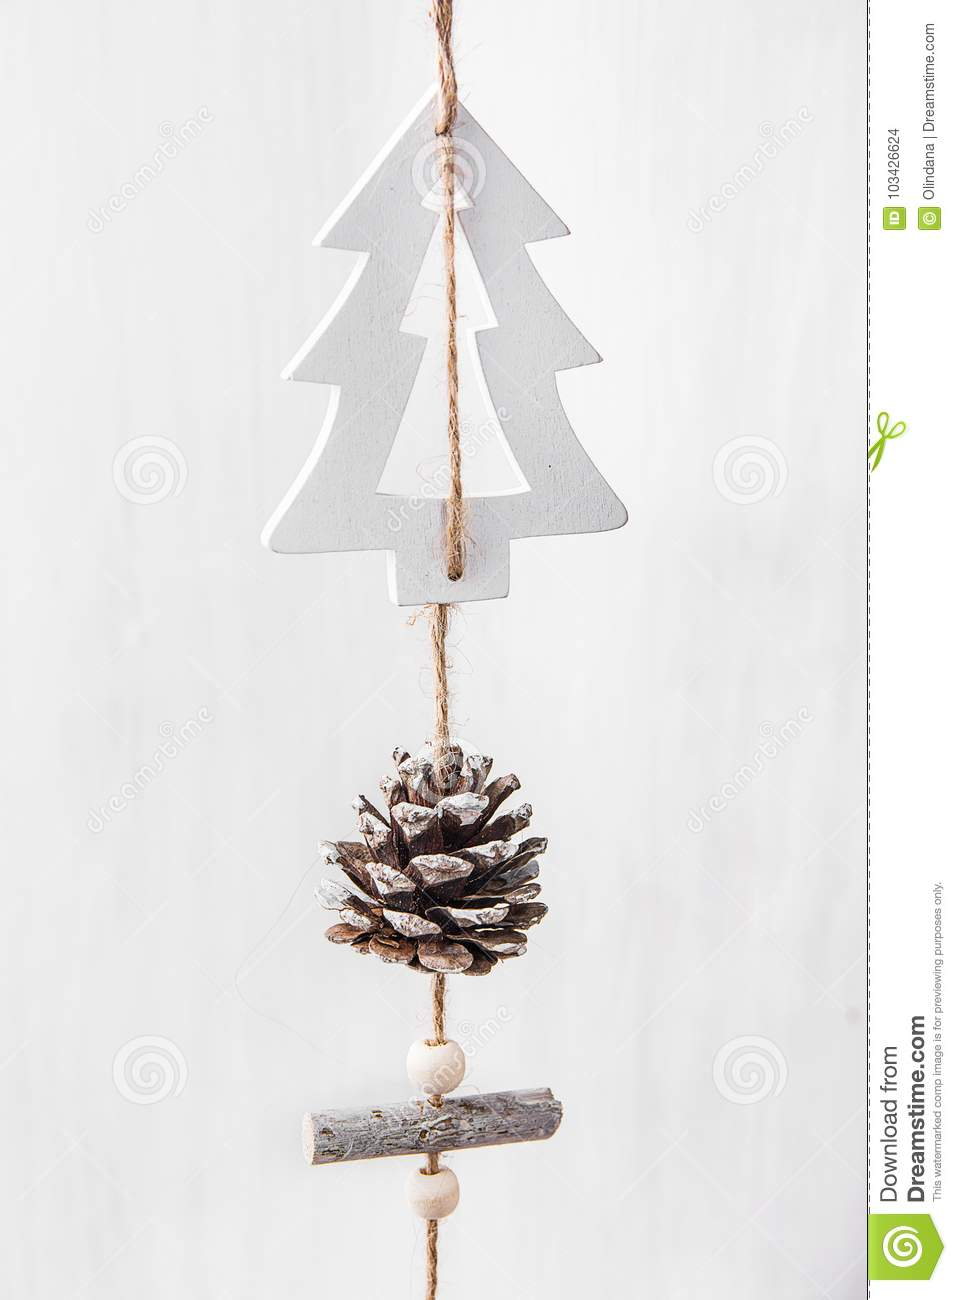 Hand Crafted Wood Christmas Tree Ornament Hanging On Twine With Pine Cone White Wood Barn Board Background Scandinavian Style Stock Photo Image Of Hanging Empty 103426624